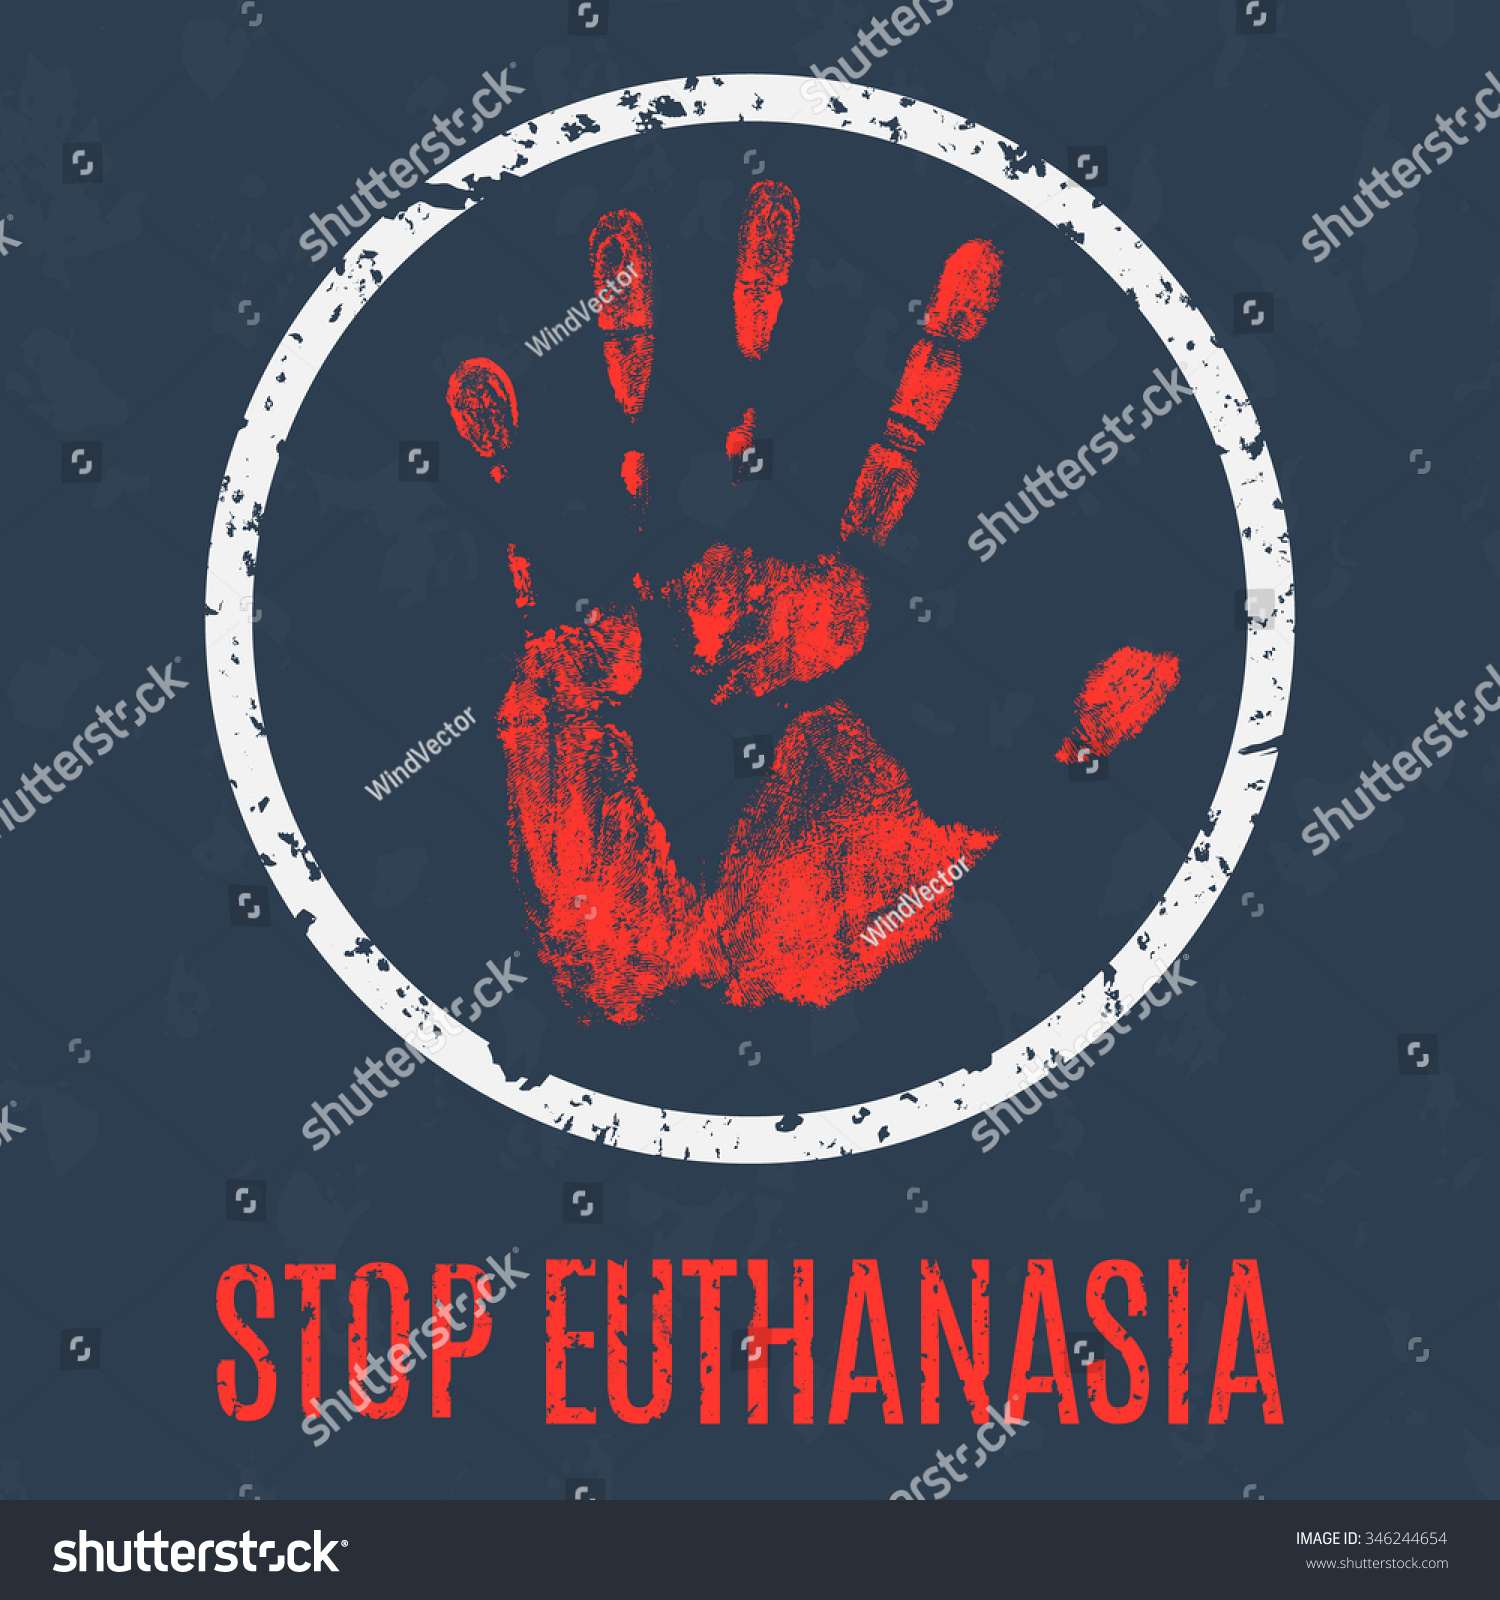 an analysis of the legalization of euthanasia Should euthanasia be legalized in the uk  of general practitioners support the legalization of euthanasia and yet in 1997 the seventh attempt  vultures analysis.